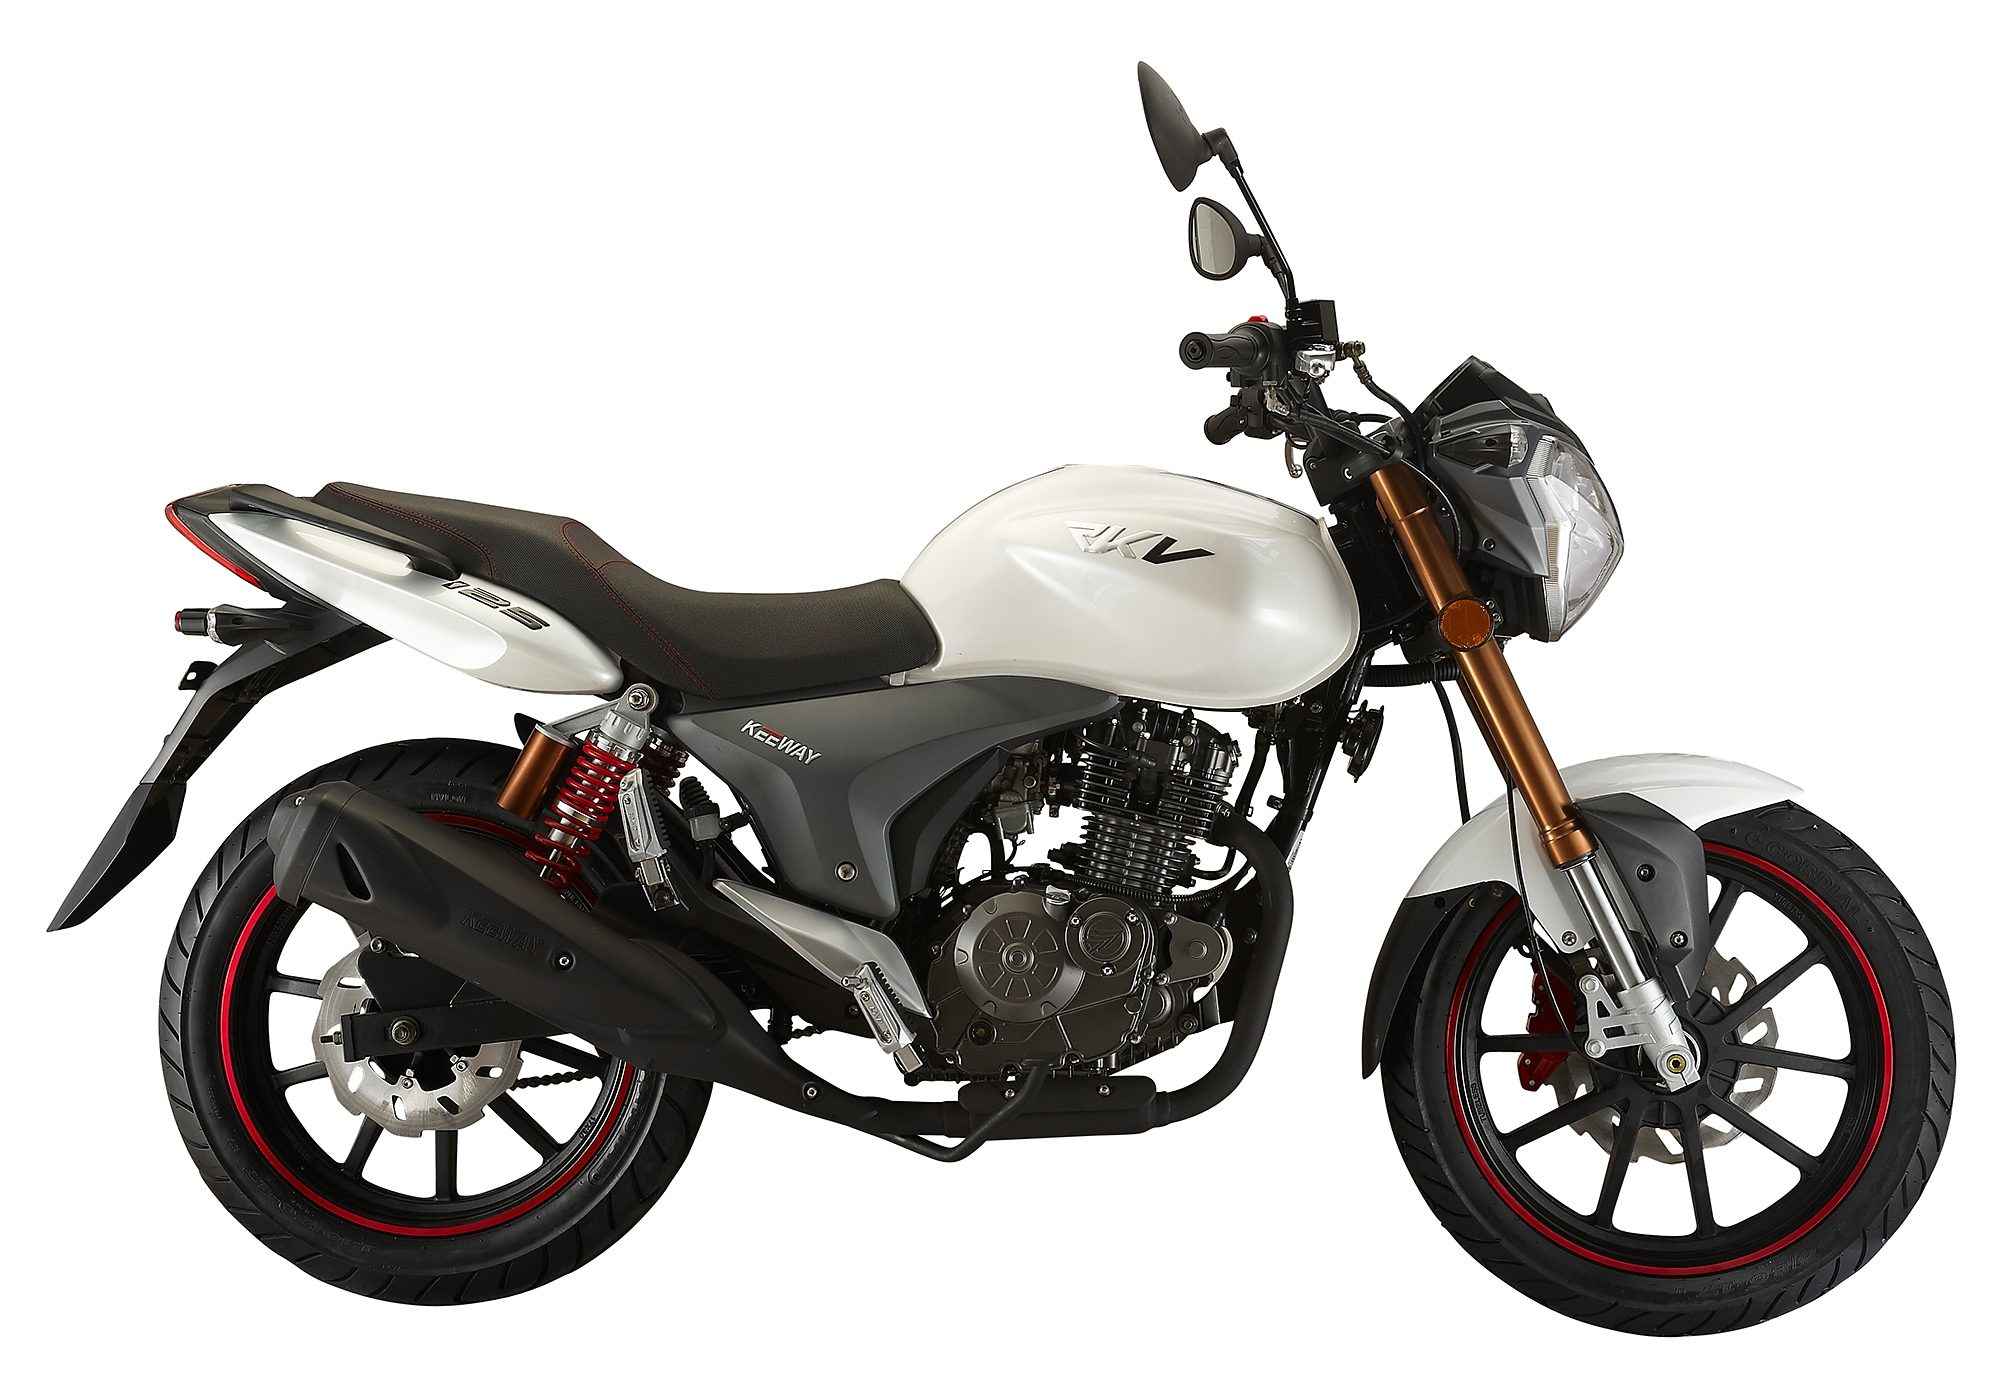 Motorrad, 95 km/h, 124,5 ccm, 11,15 PS, weiss , »RKV 125 Naked«, Keeway